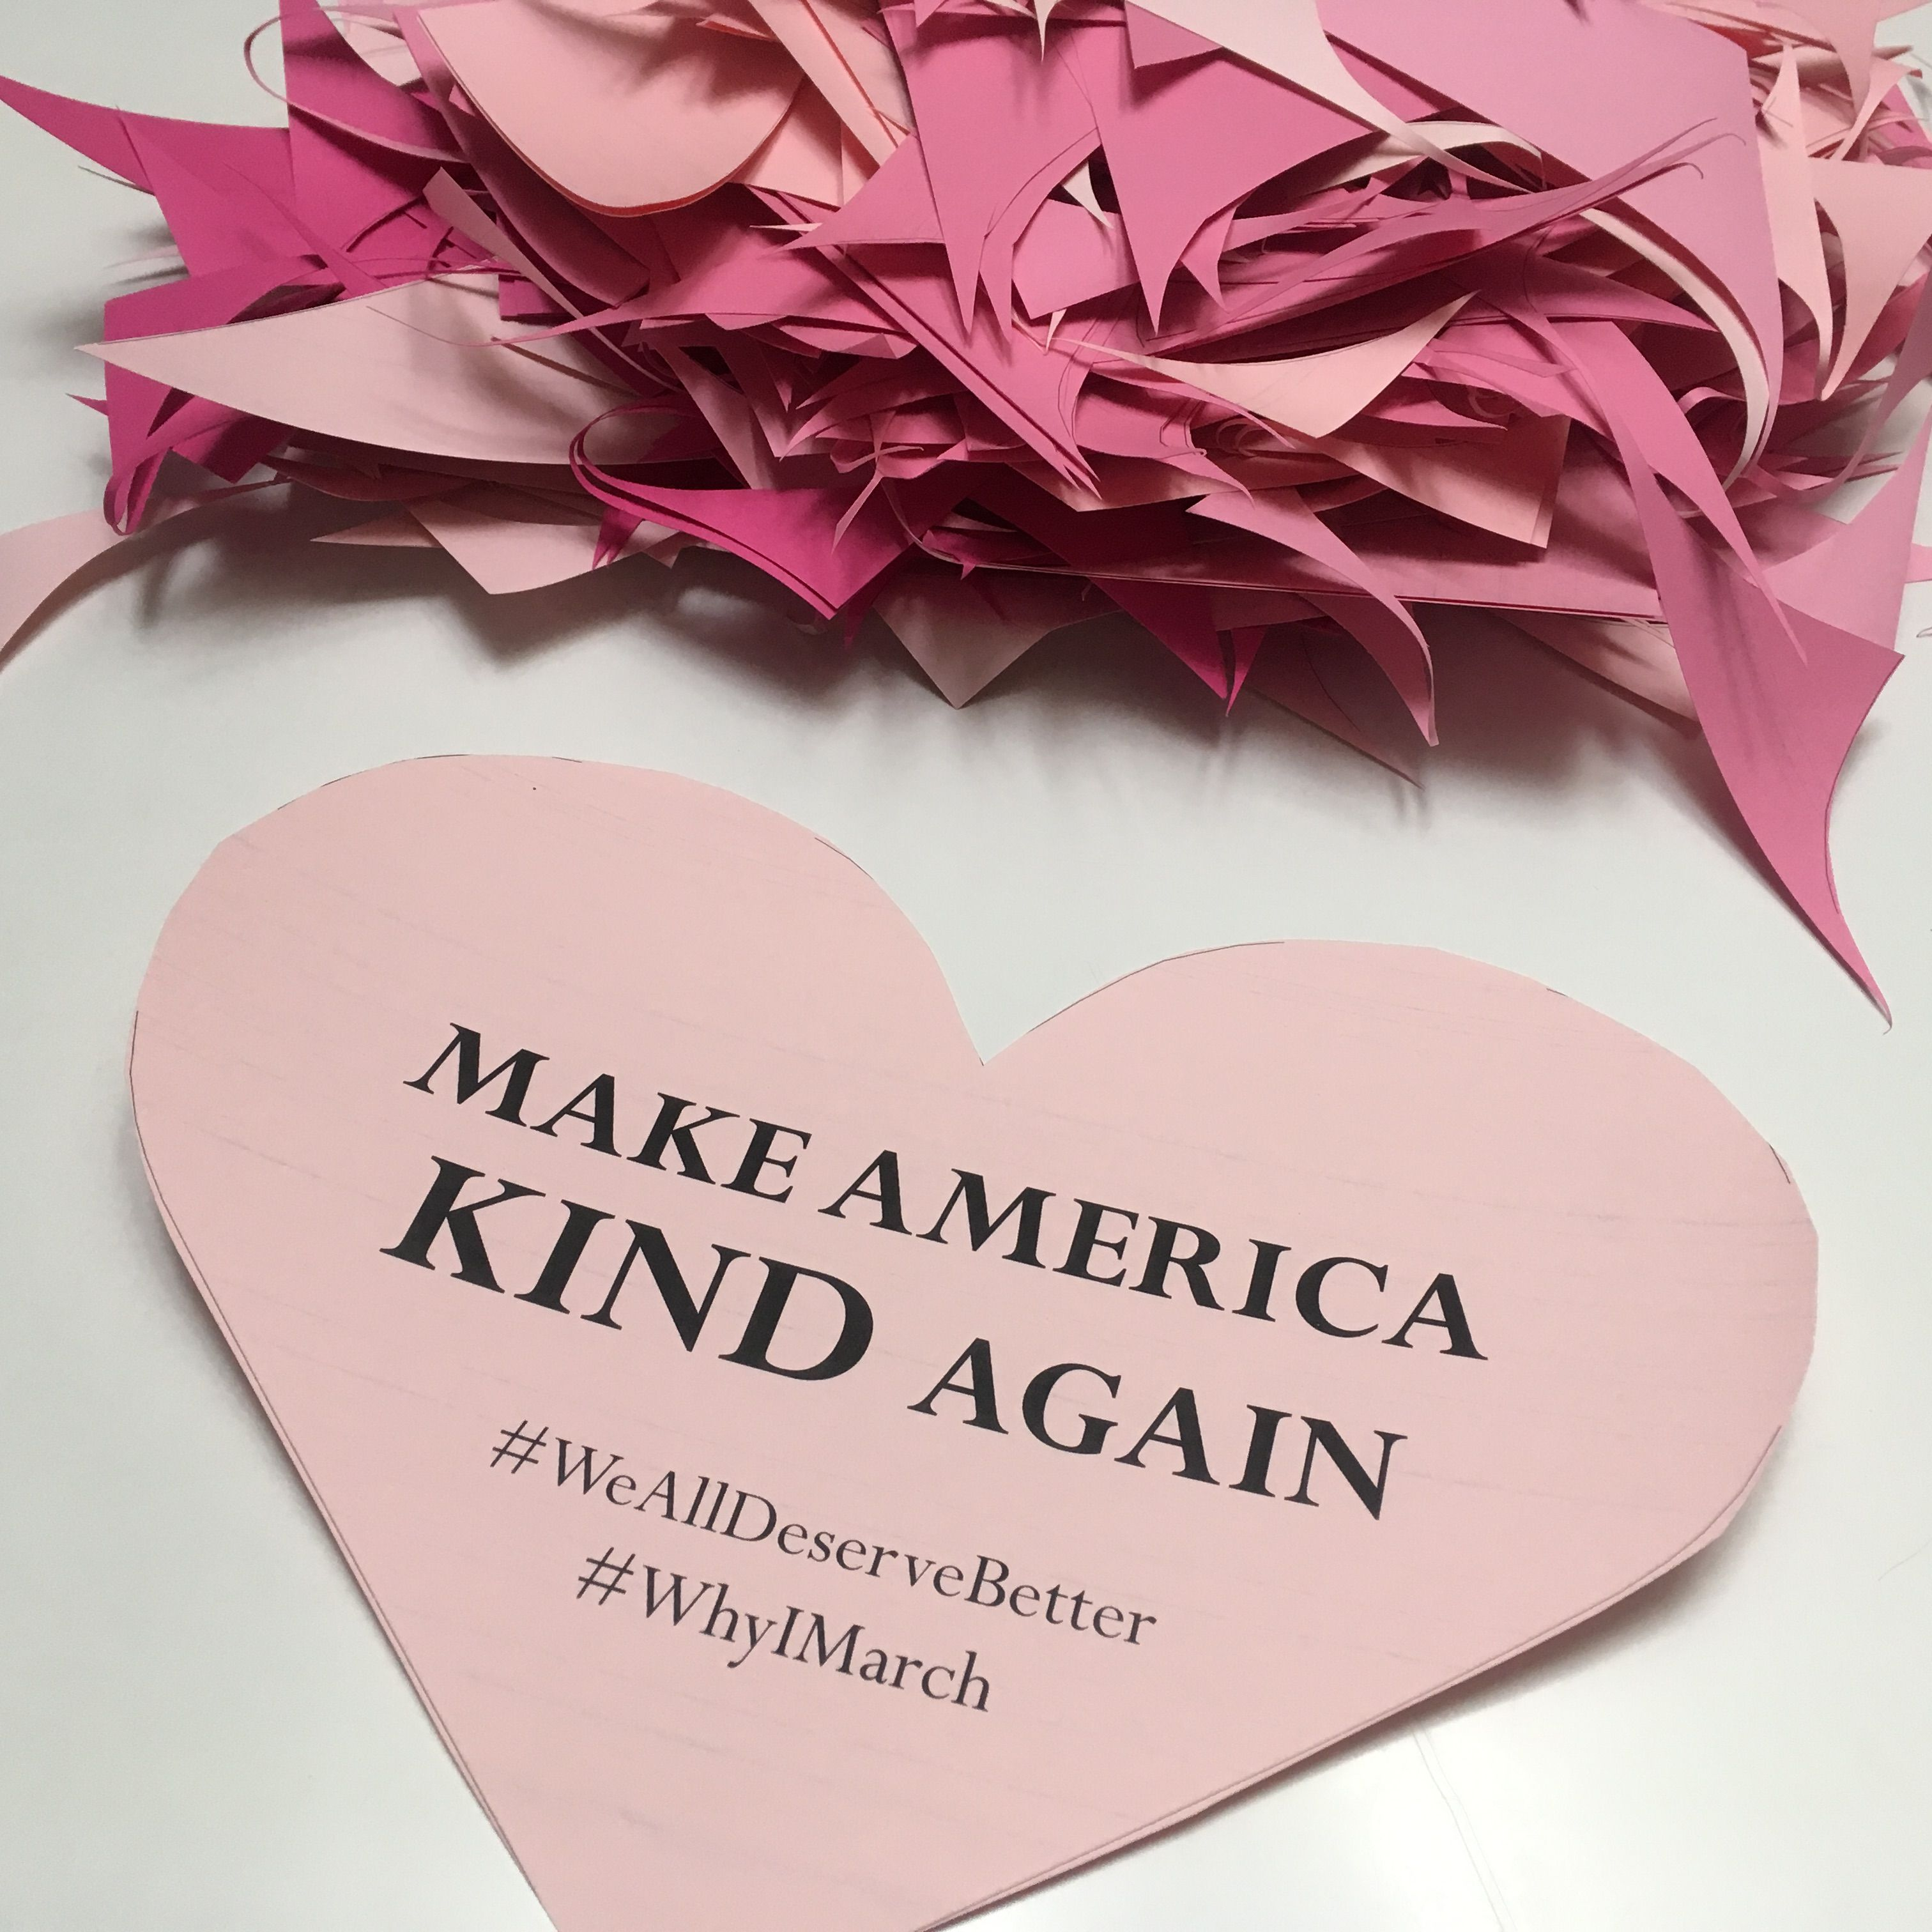 Make America Kind Again. Woman's March DIY sign.